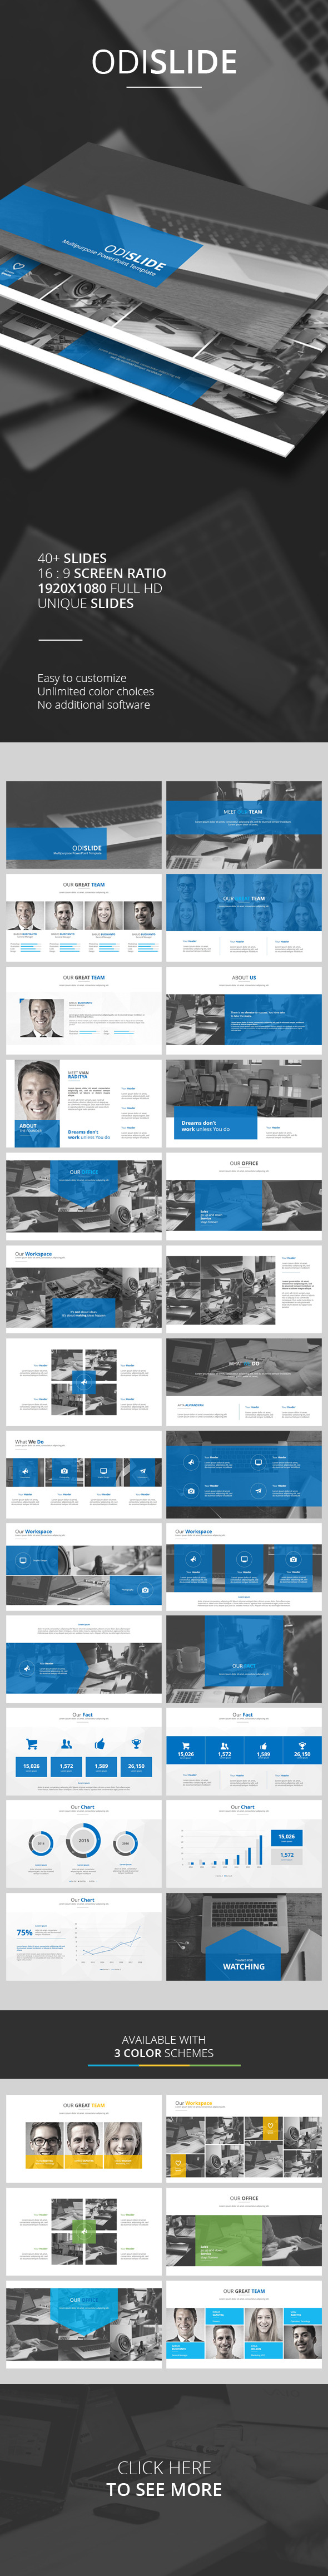 Odislide PowerPoint Template - PowerPoint Templates Presentation Templates